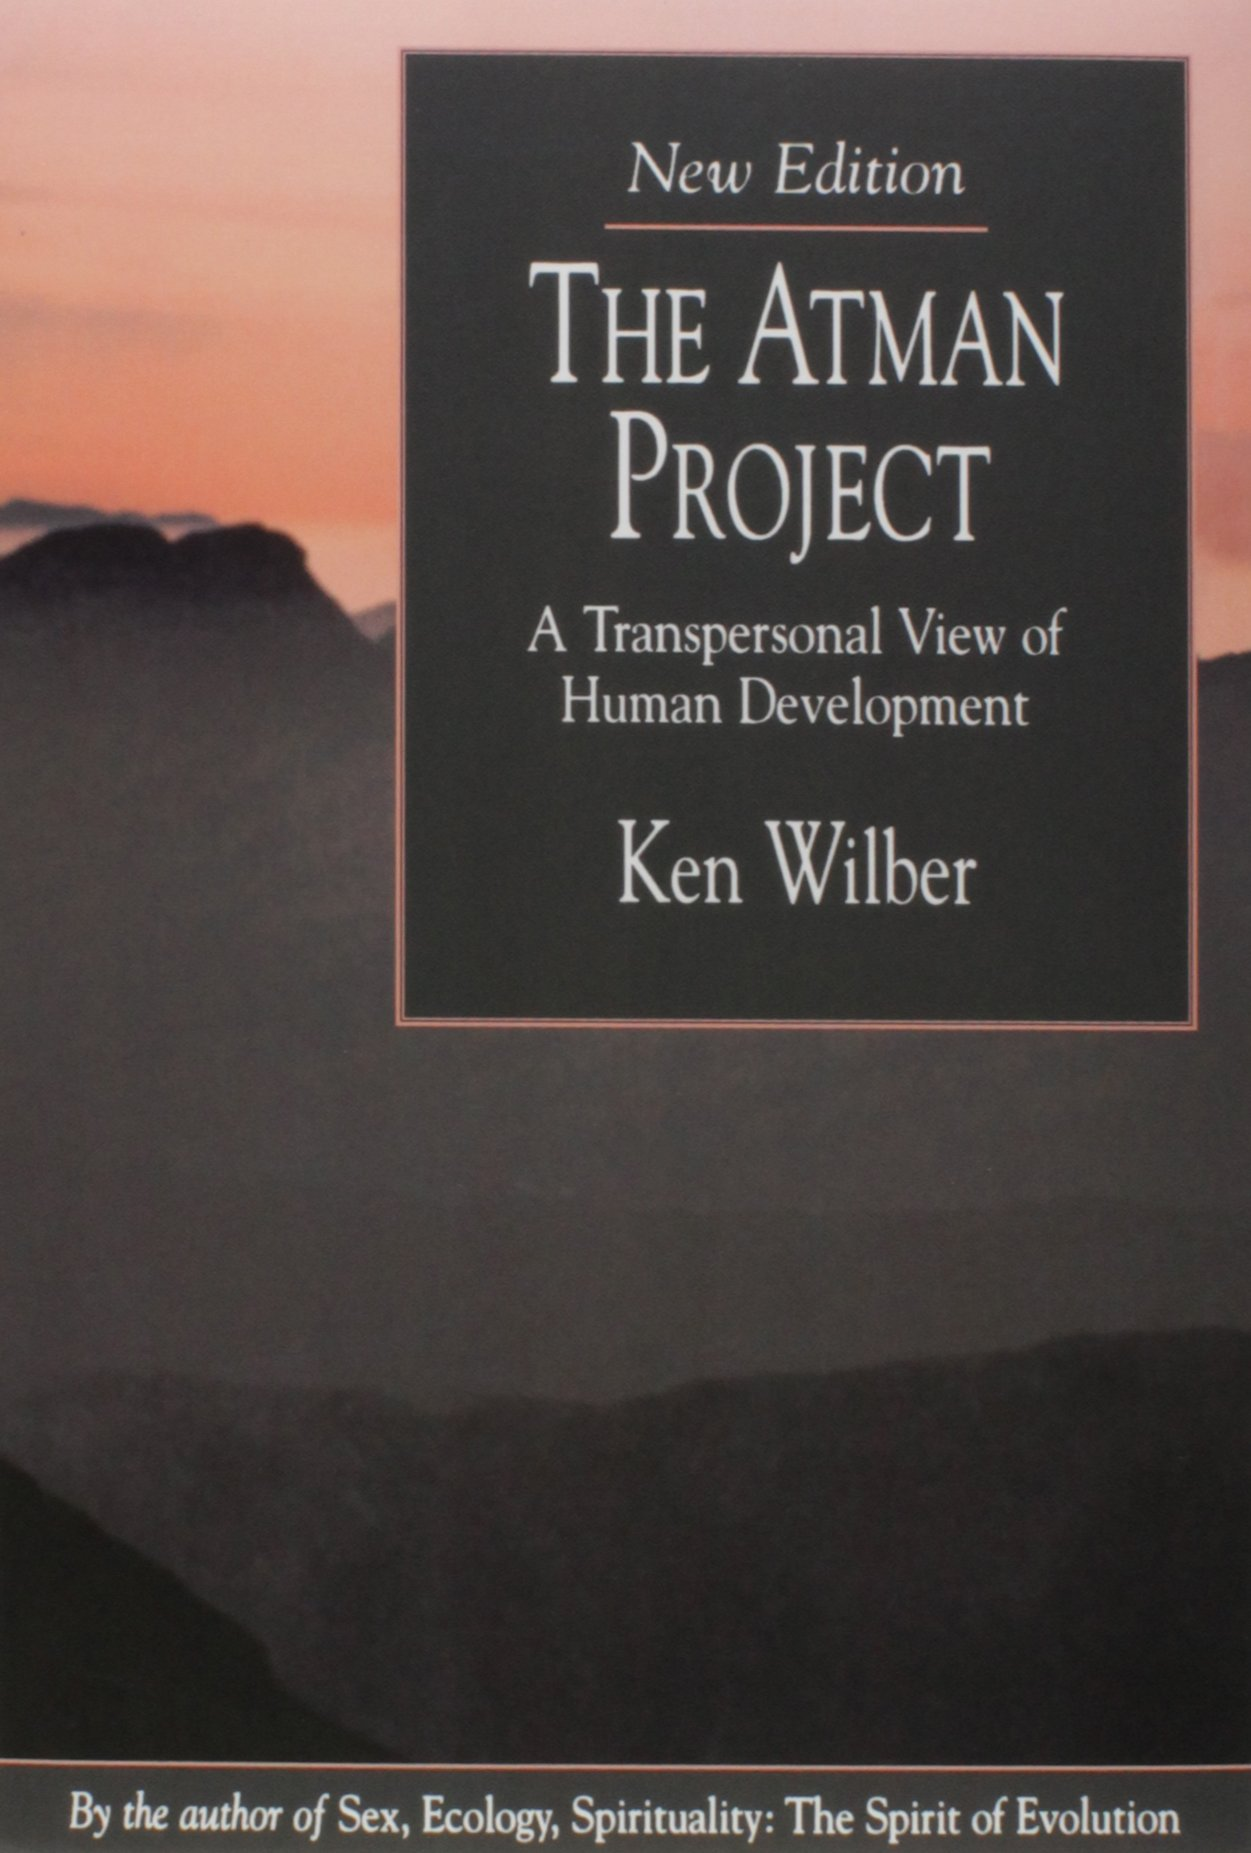 "the atman project - By Ken WilberThe point of this book: Awareness evolves in each of us – it unfolds in cycles and stages. These same stages play out over millenia for entire societies and cultures, as written in the next book, below (Up From Eden). The Atman Project attempts to integrate the work of developmental psychology with pre-egoic, pre-rational structures of consciousness with the experience of the mystical traditions with post-egoic, post-rational structures, to form a picture of how the individual evolves from structure to structure ""up"" the hierarchy, or ""holarchy"" in Wilber language, of these stages. There is a discussion of how ""Spirit"" ""involves"" itself downward through these structures and creates the imperative to evolve back up through them to Self-realization."